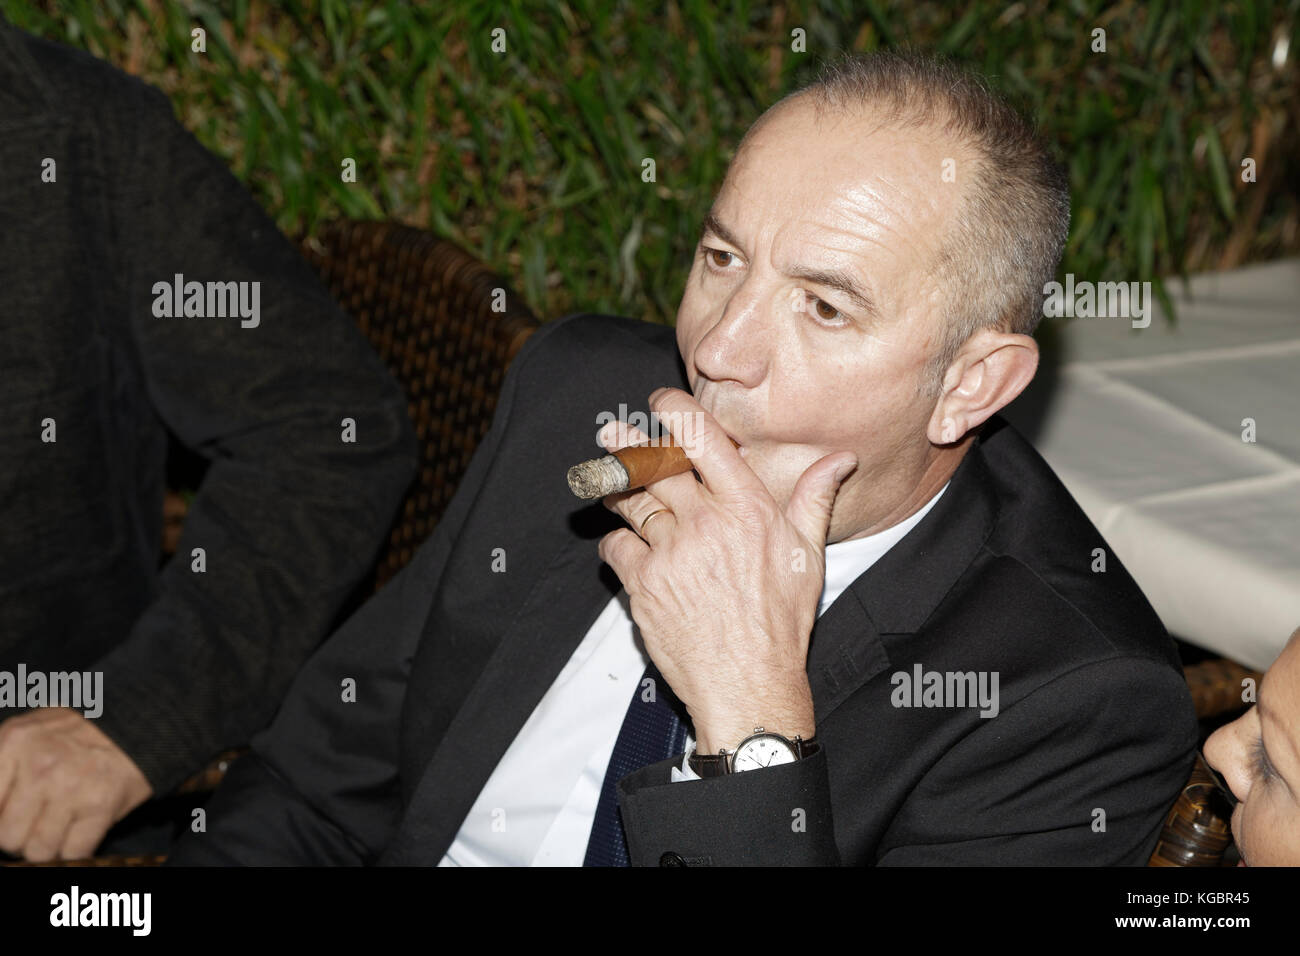 Paris, France. 6th Nov, 2017. Philippe Claudel attends the Prix Goncourt at the Drouan restaurant on November 6, - Stock Image